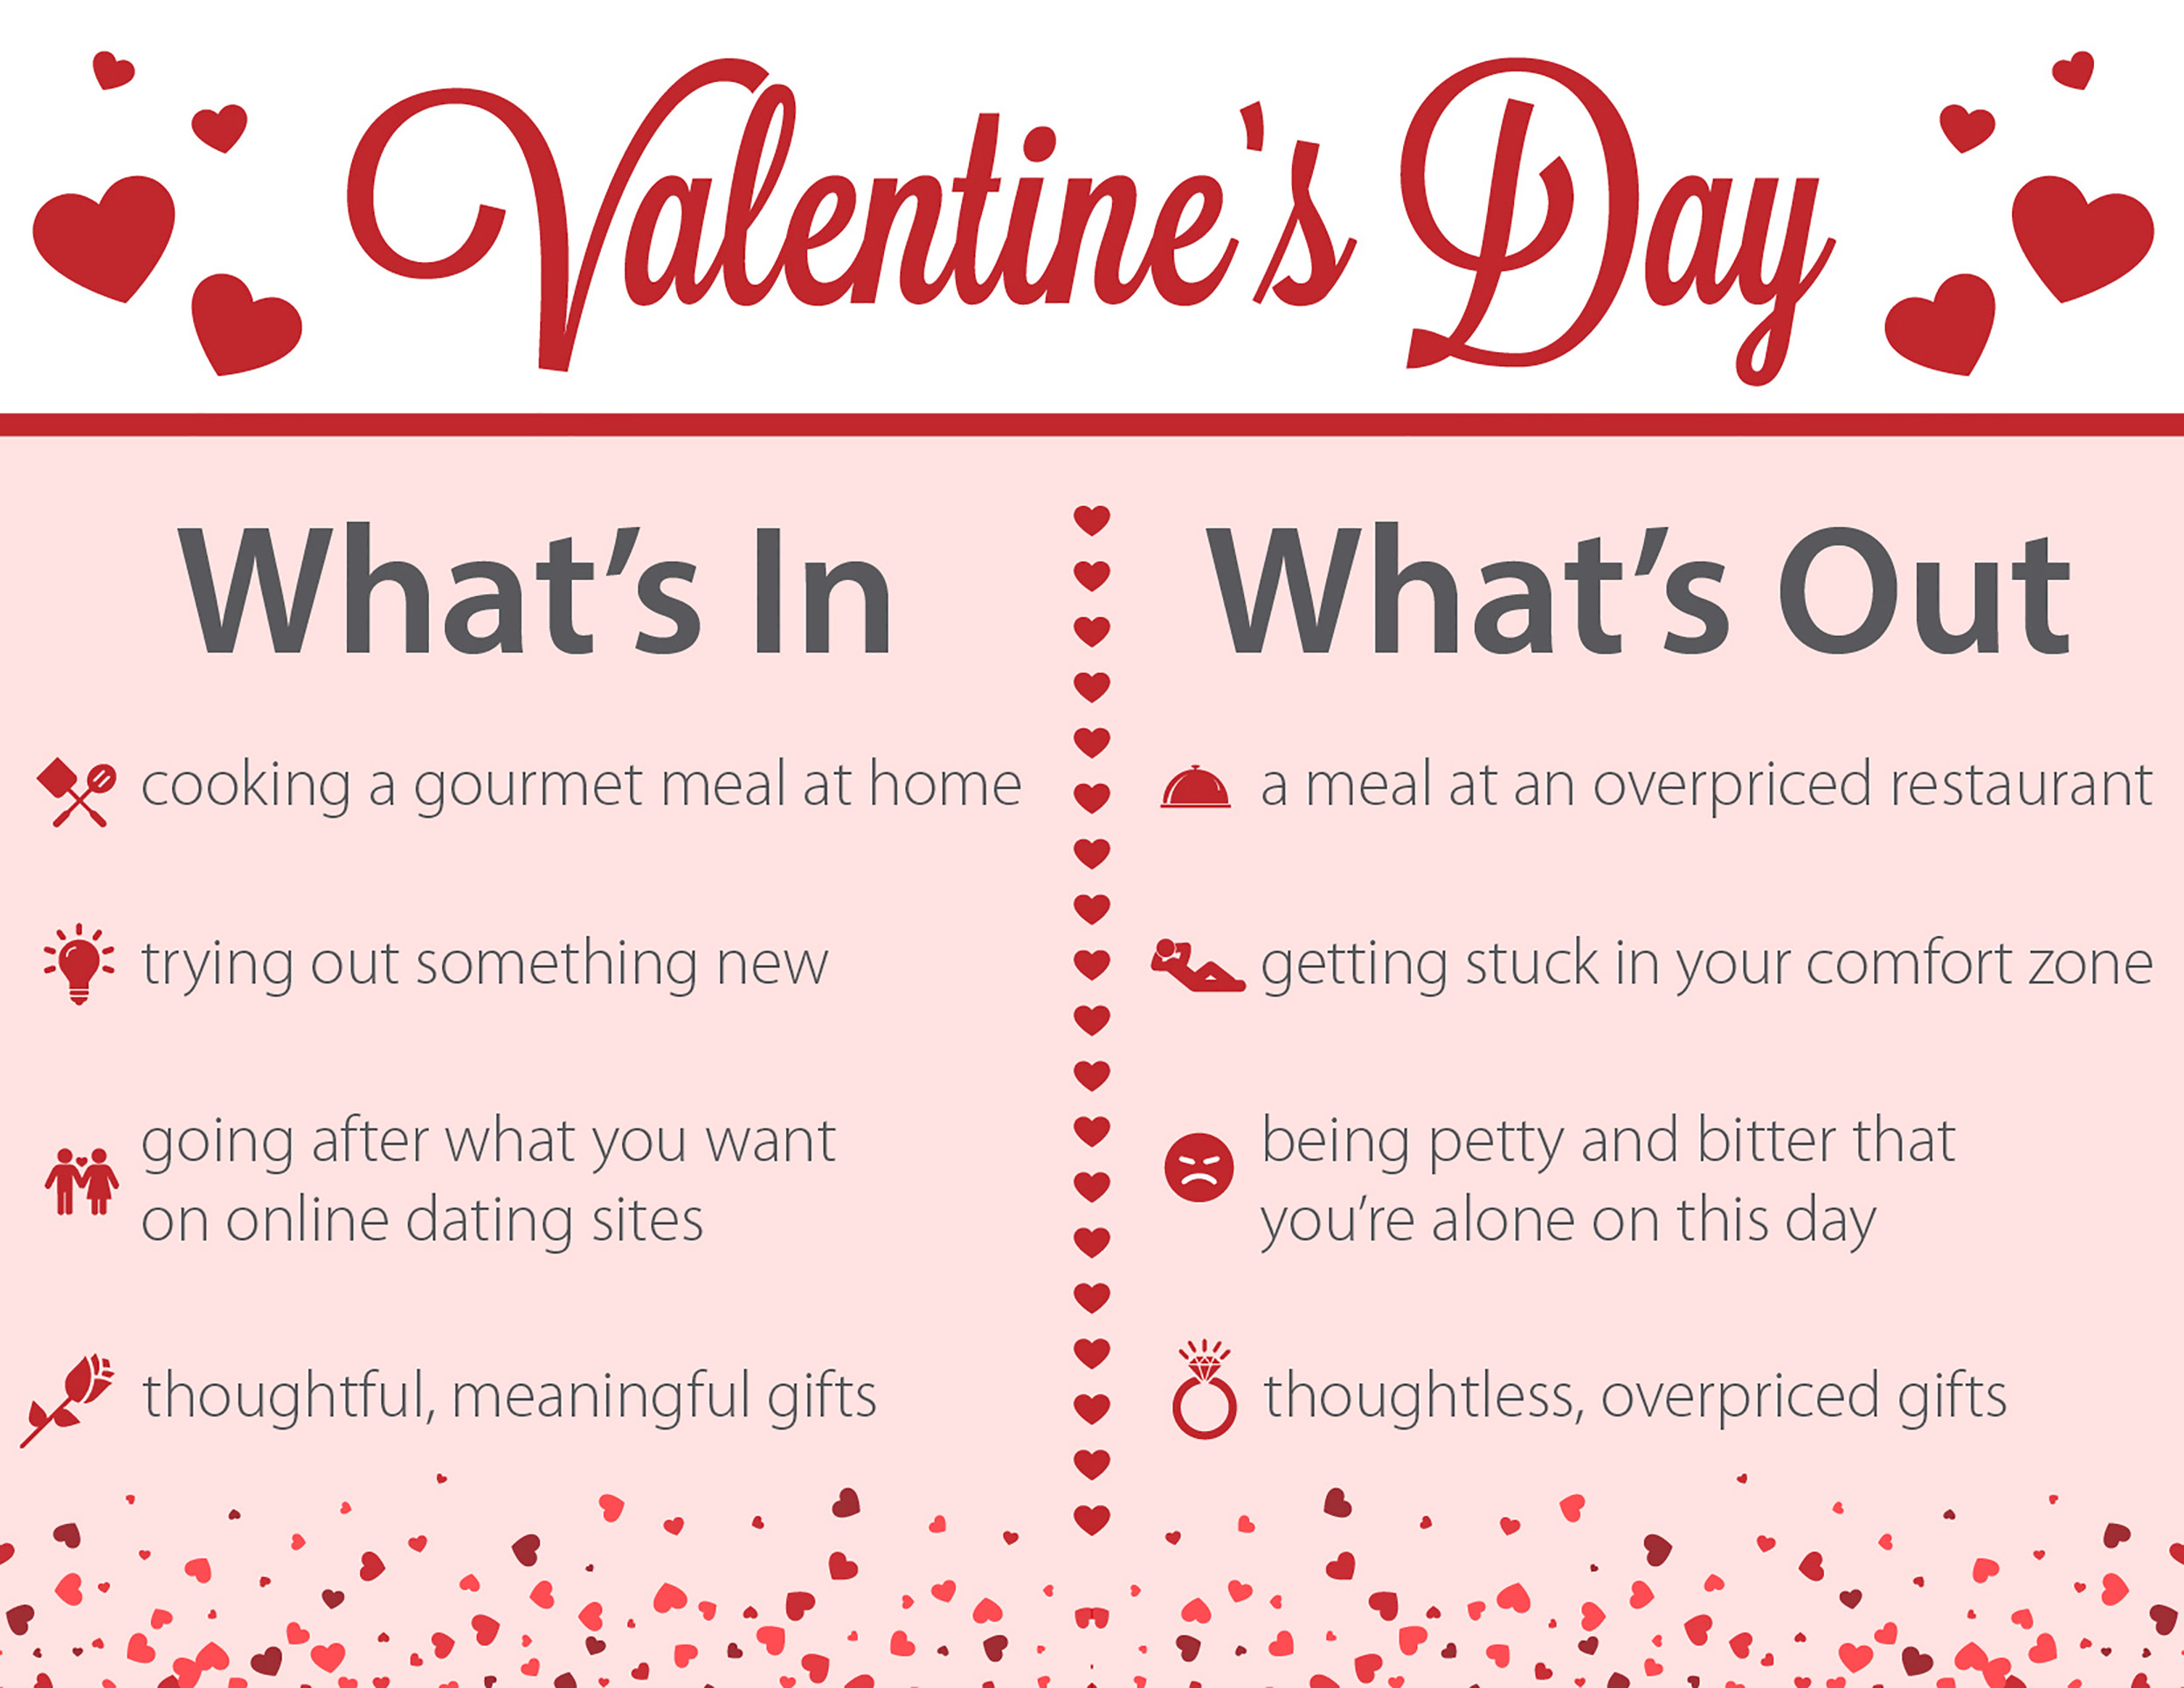 Valentine's Day Whats In Whats Out